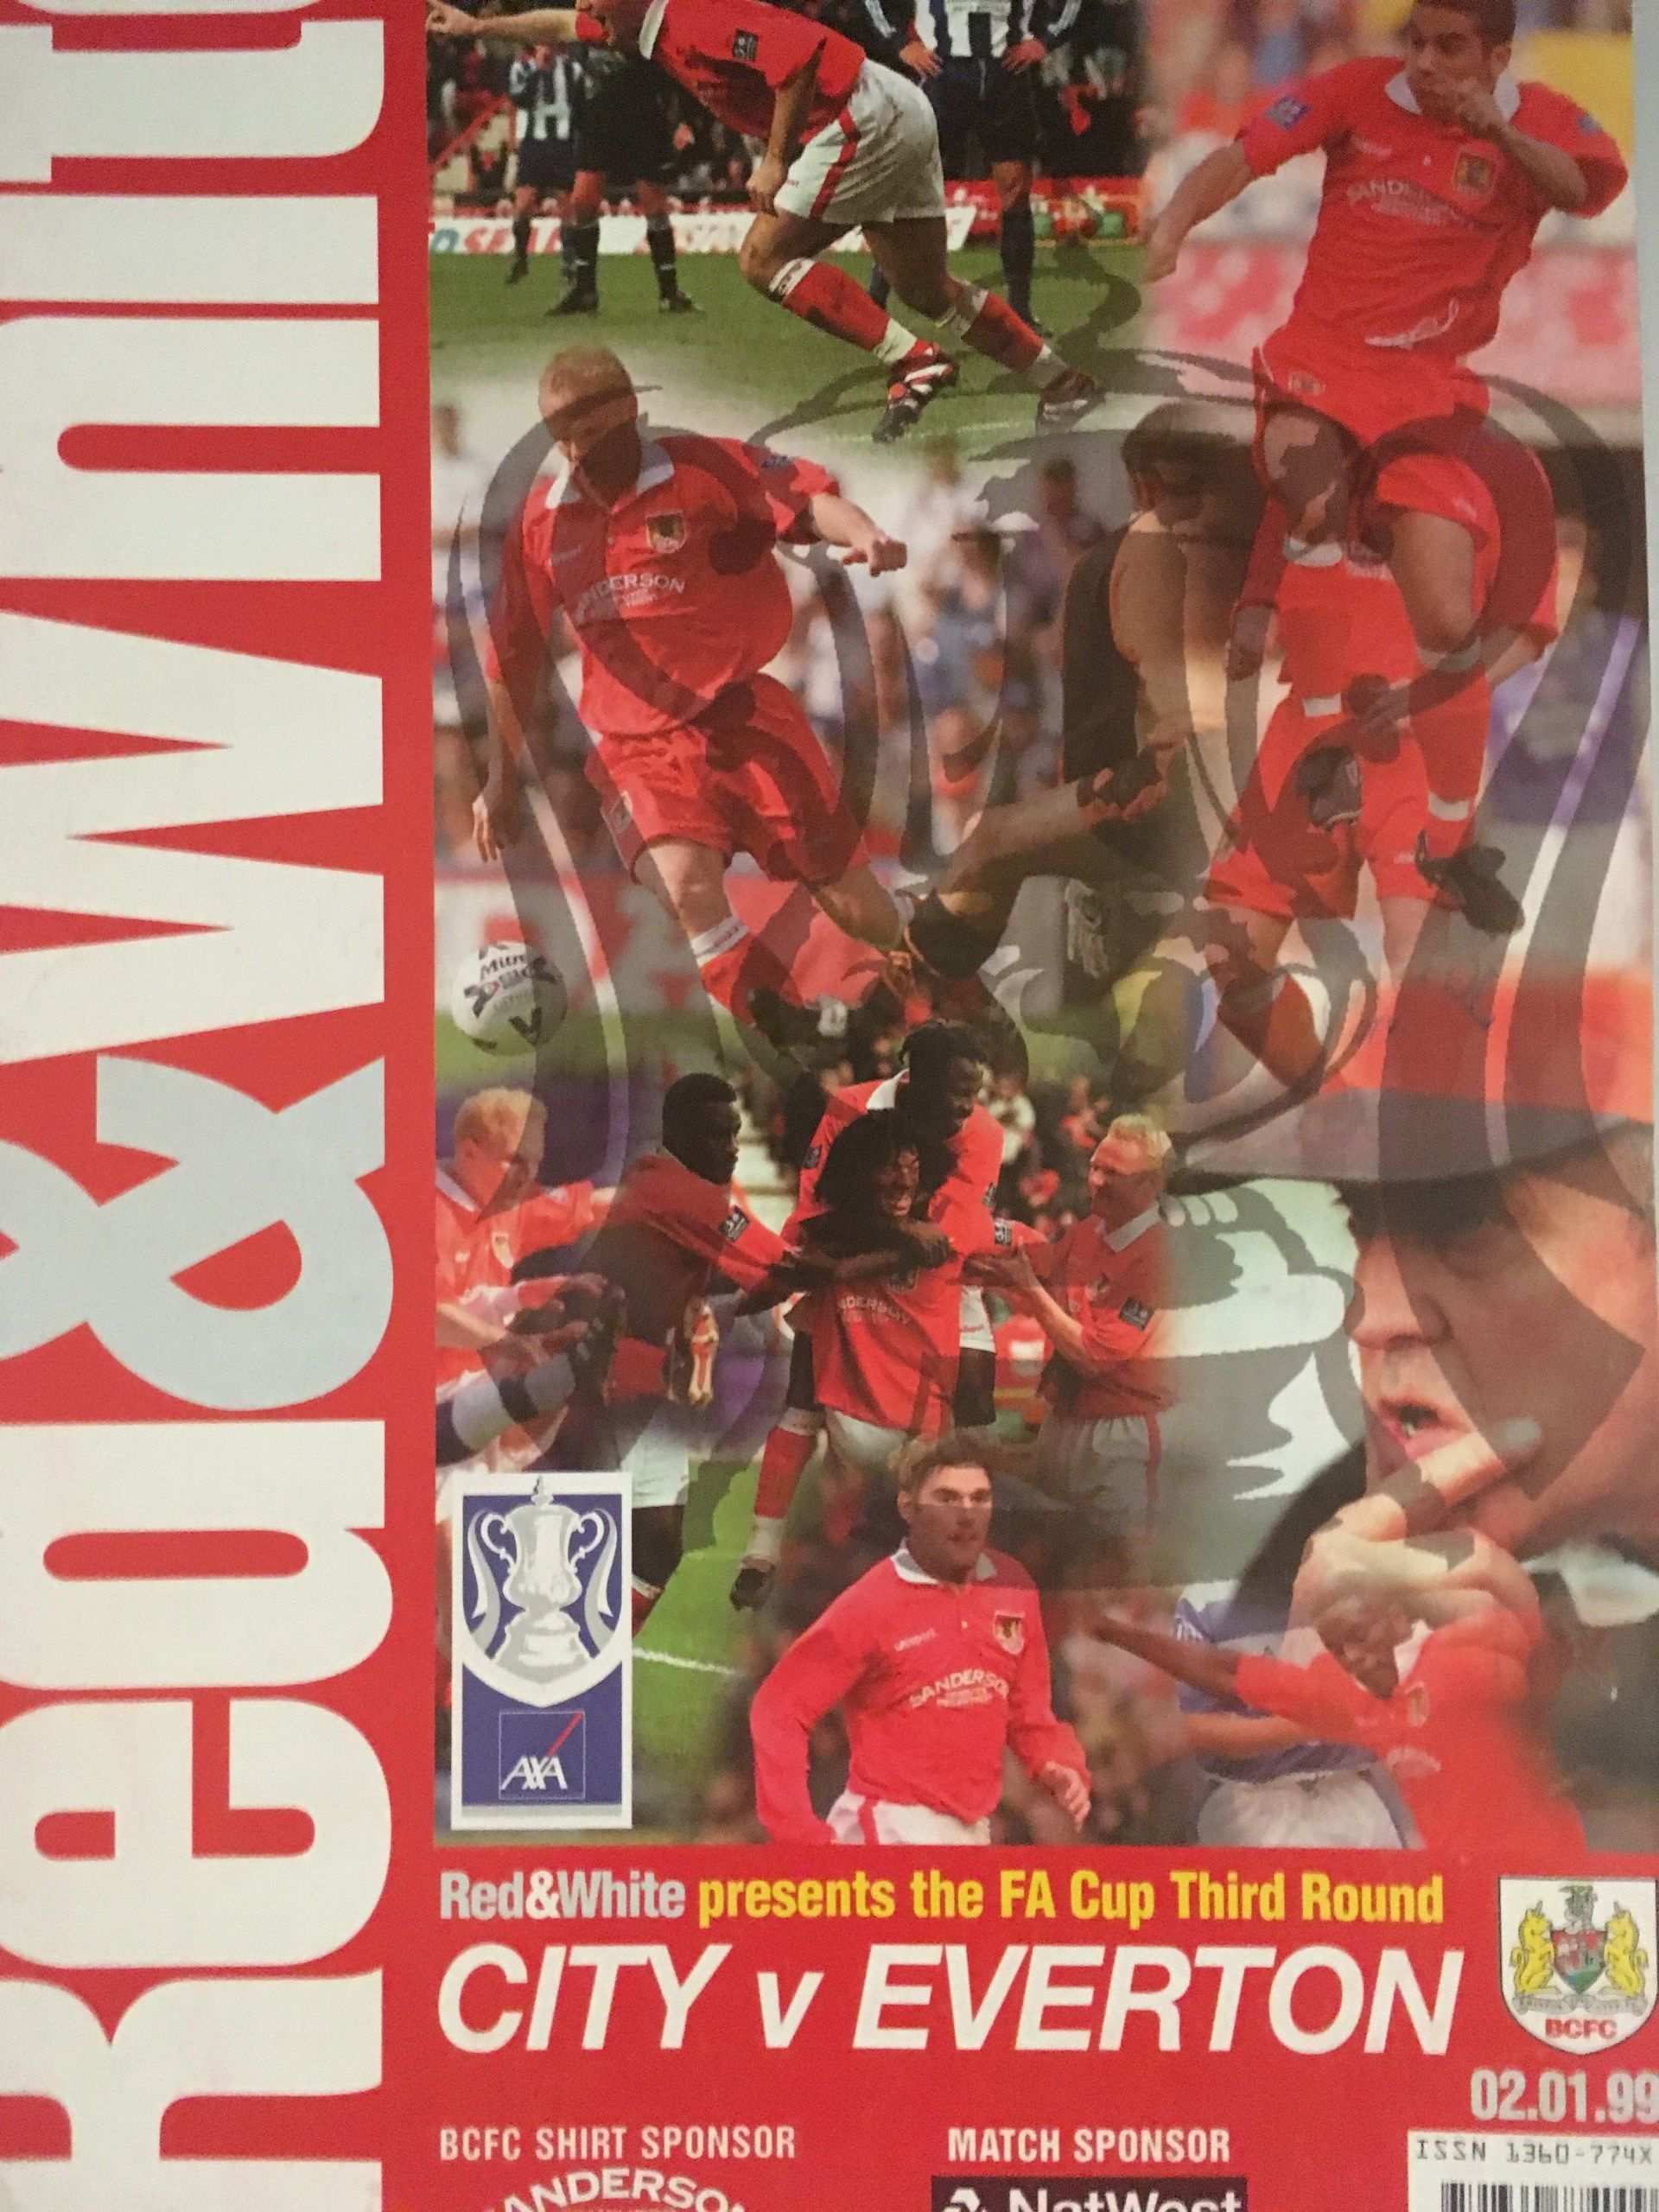 Bristol City v Everton 02-01-1999 Programme